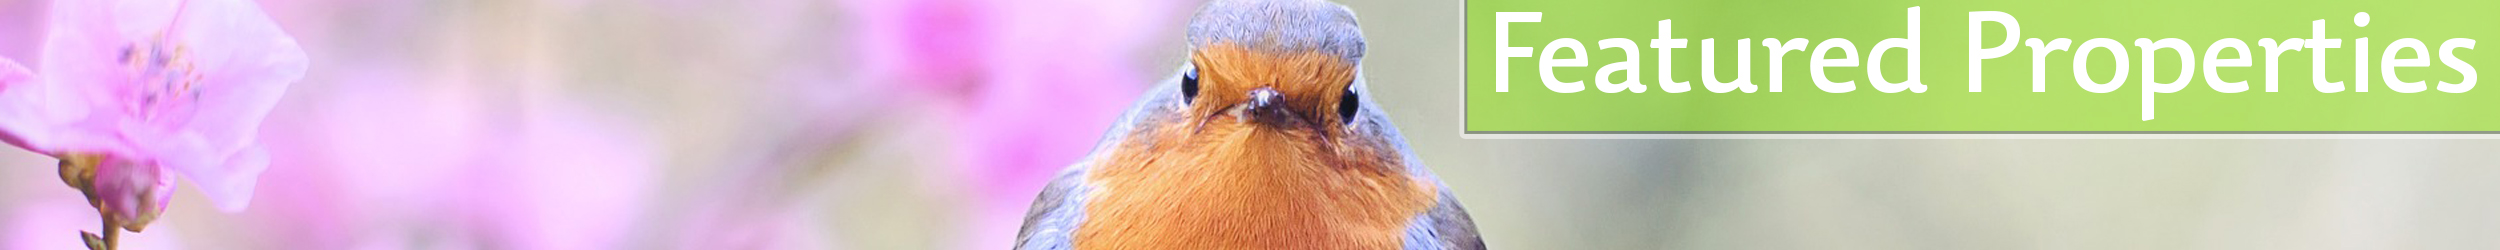 Spring image of red breasted robin looking at you and the words Featured Properties